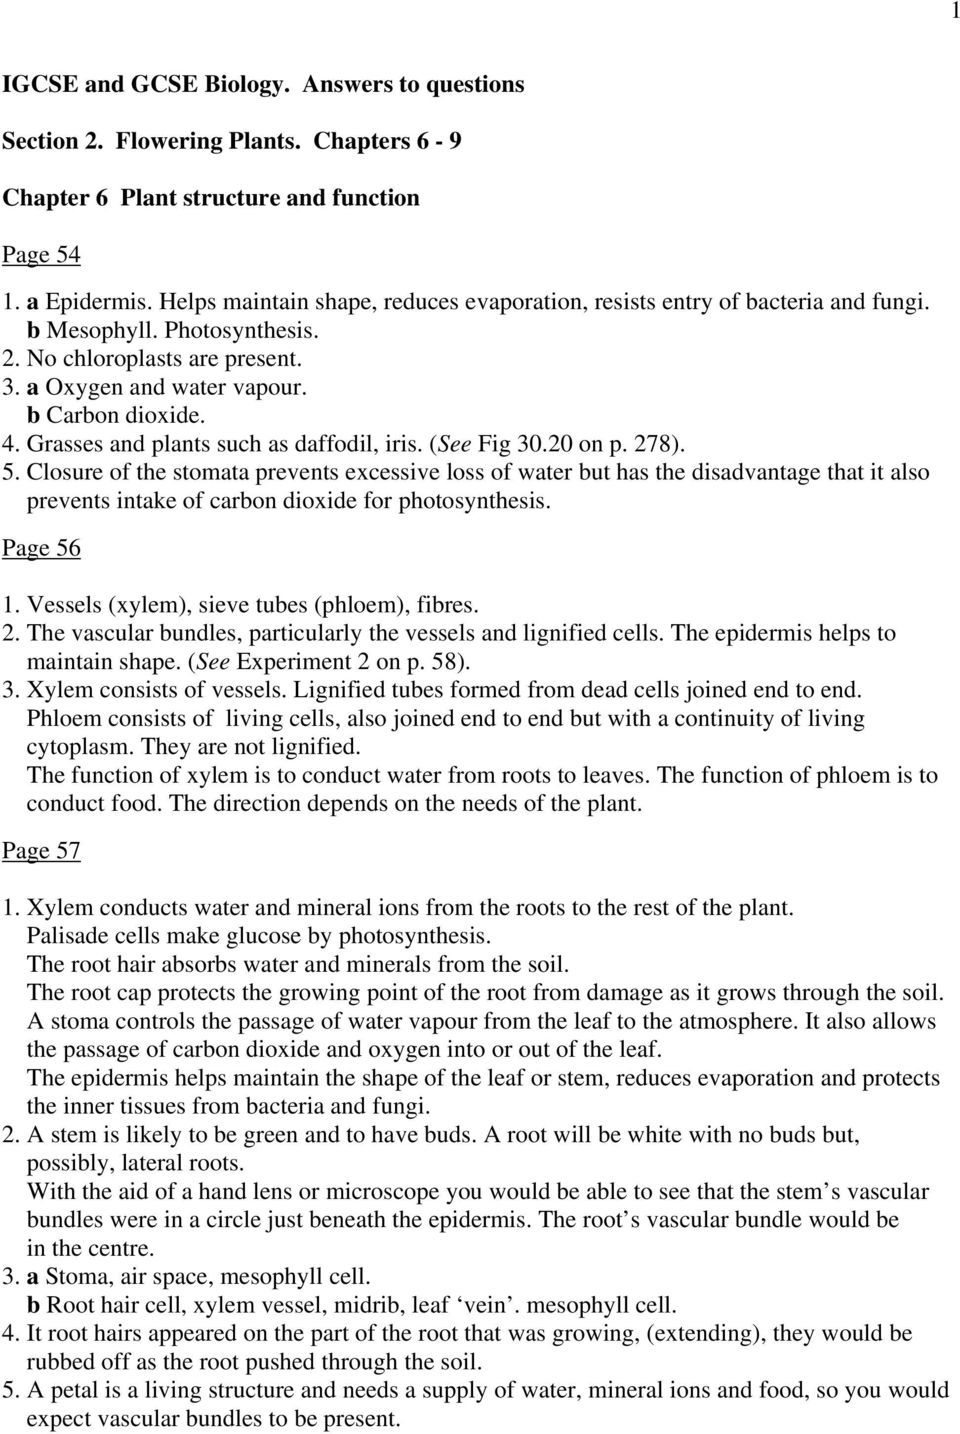 Igcse And Gcse Biology Answers To Questions Section 2 Flowering